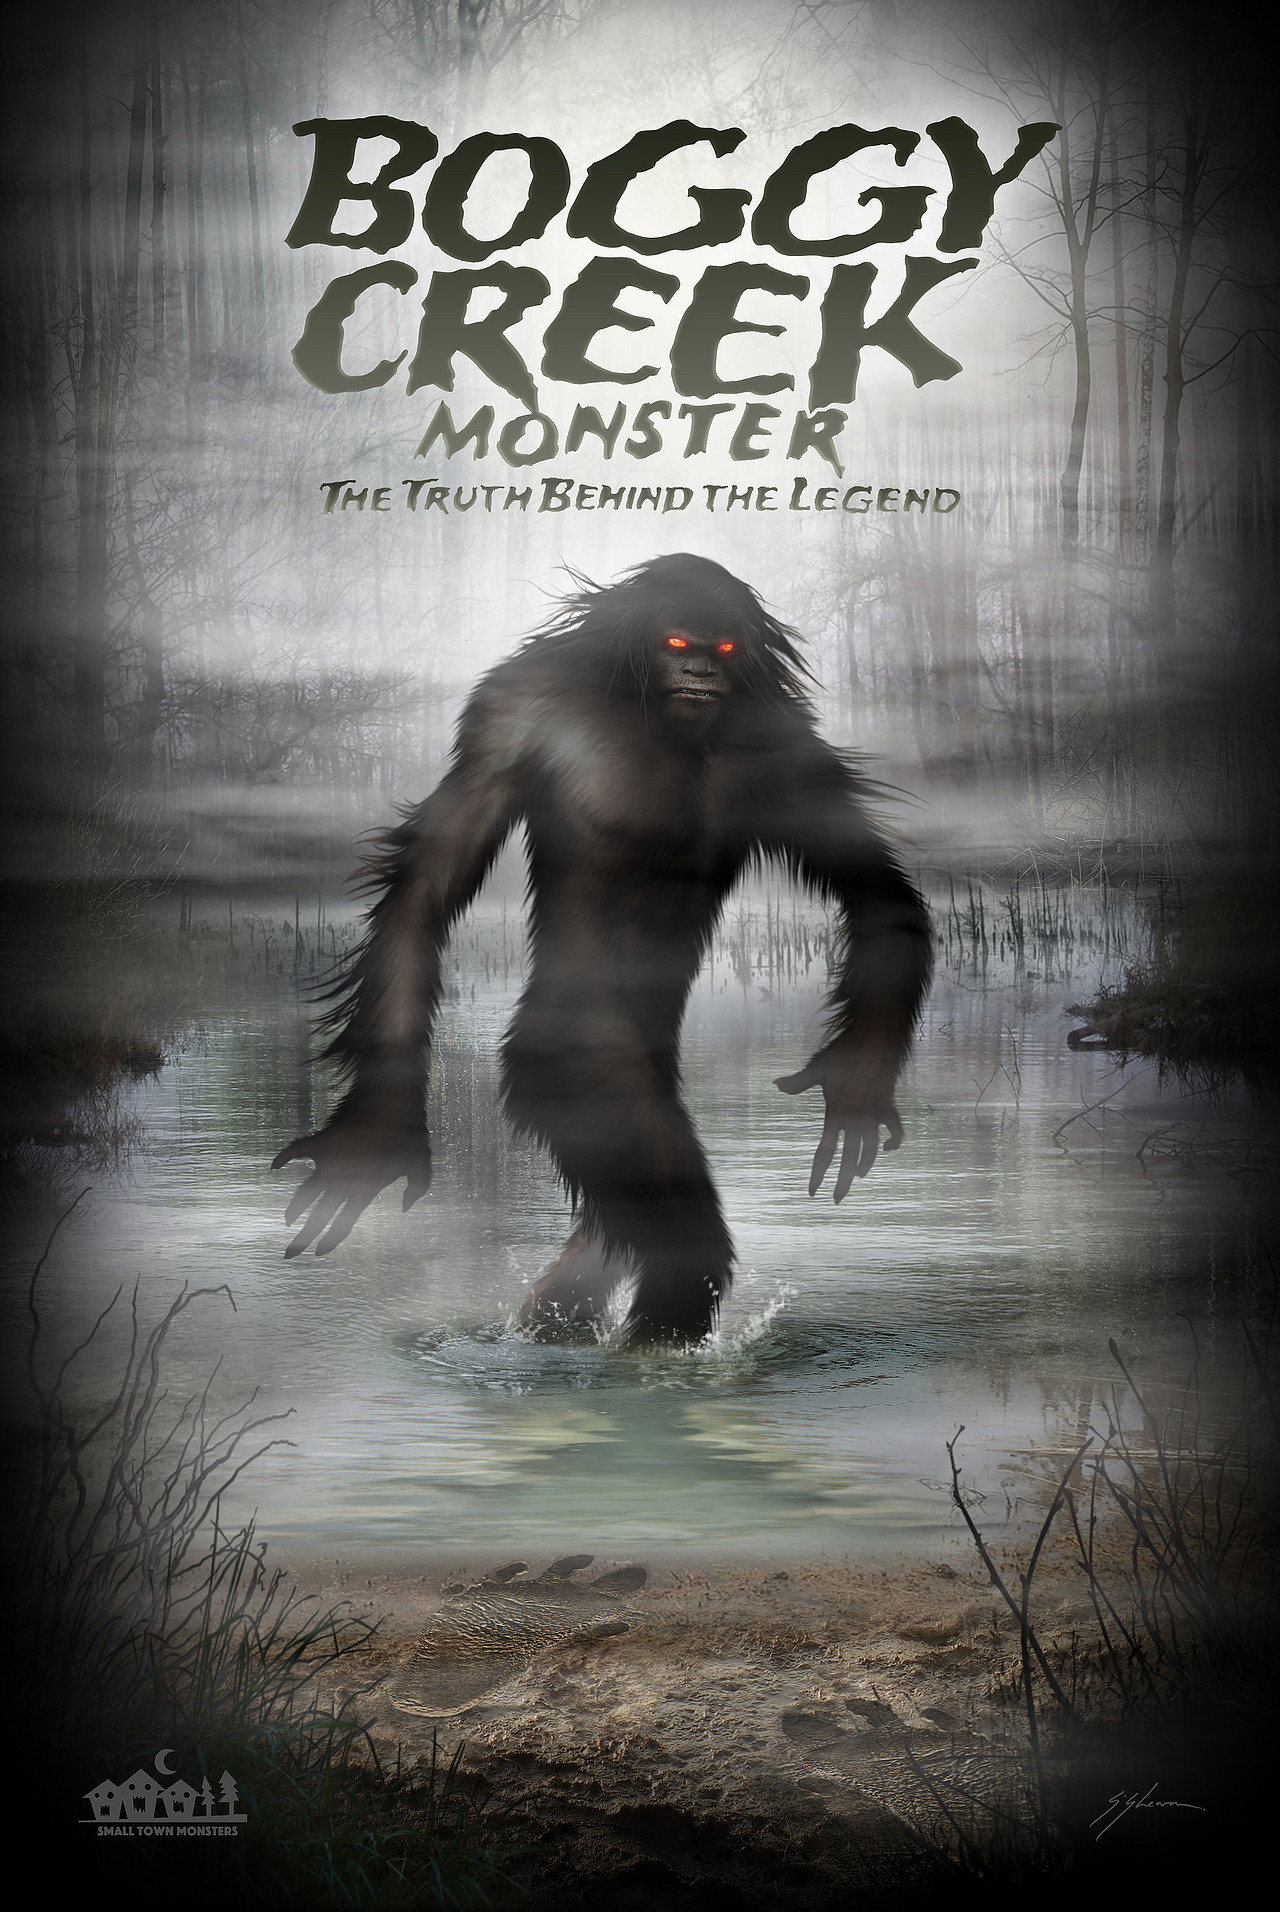 New Trailer Teases The Boggy Creek Monster